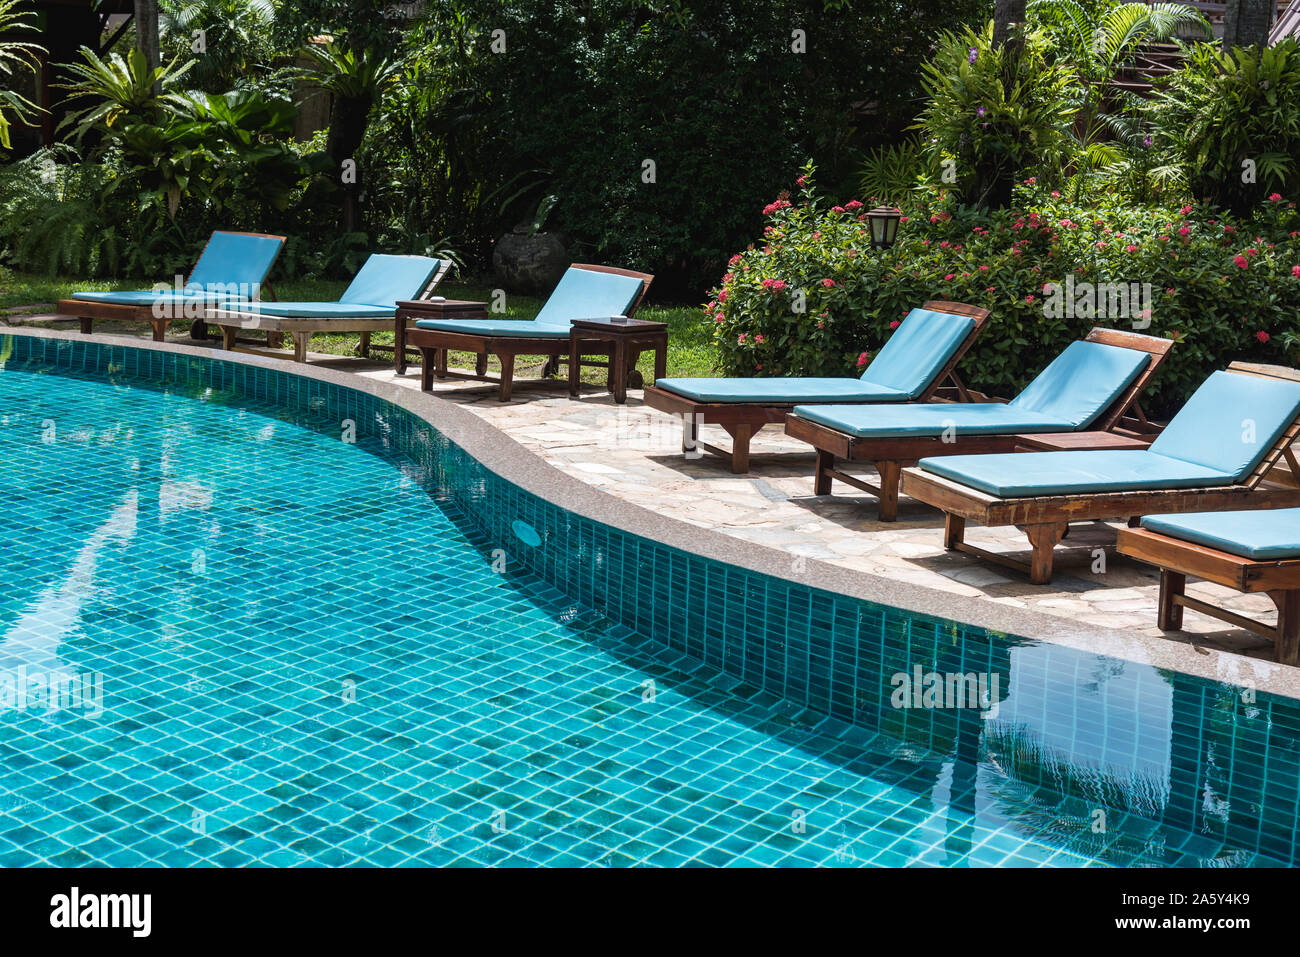 Outdoor Natural Gas Fire Pit Table, Nobody Lounge Chairs Near Swimming Pool In Hotel Resort Stock Photo Alamy